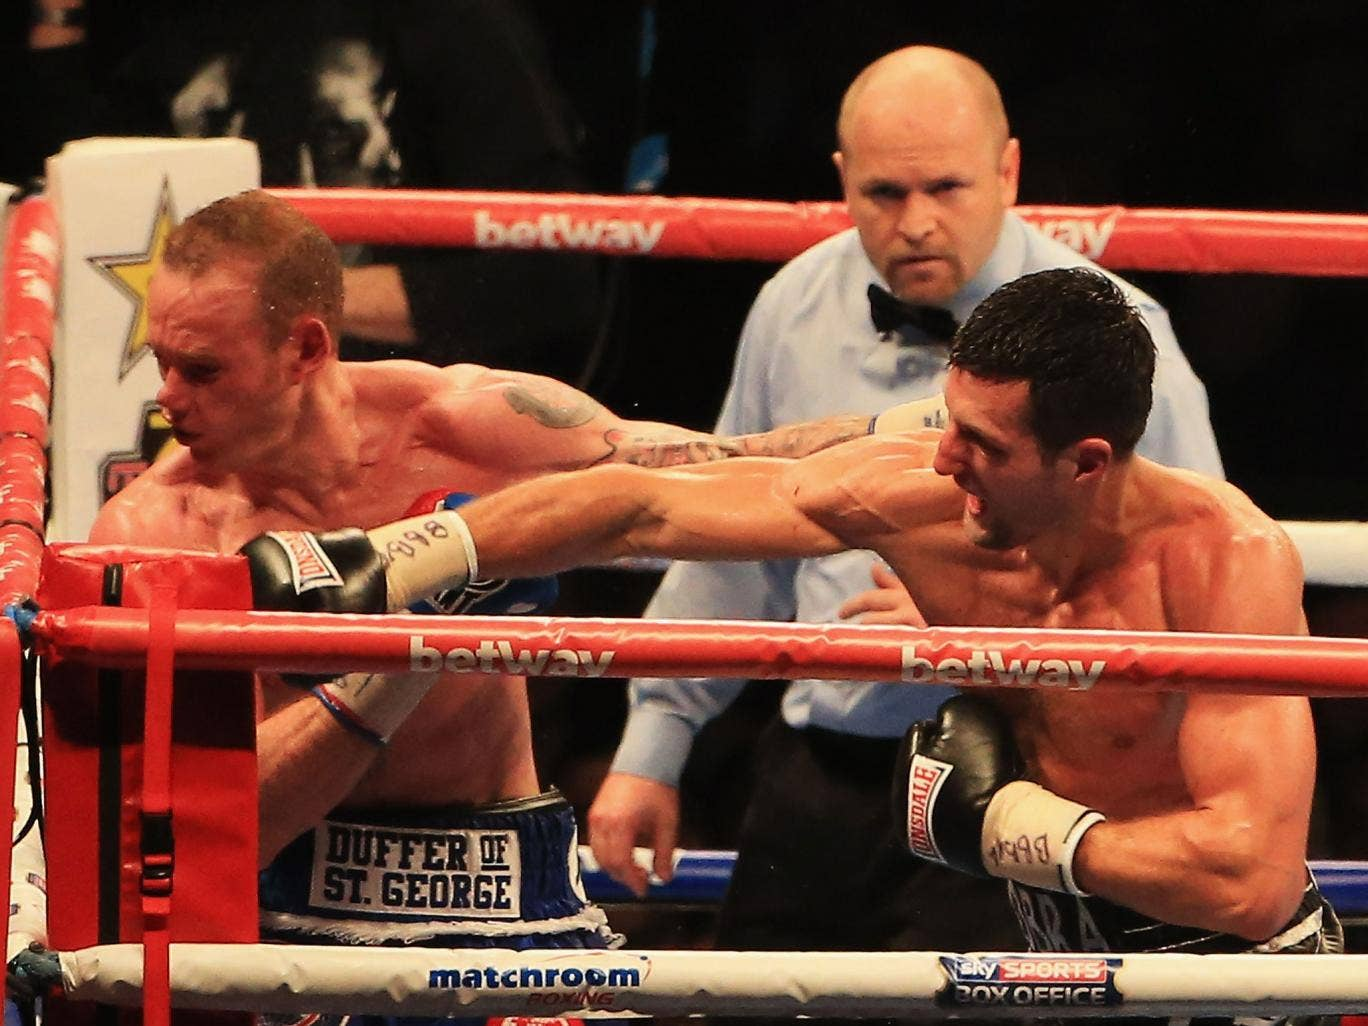 Carl Froch knocks out George Groves during the IBF & WBA World Super Middleweight Title Fight at Wembley